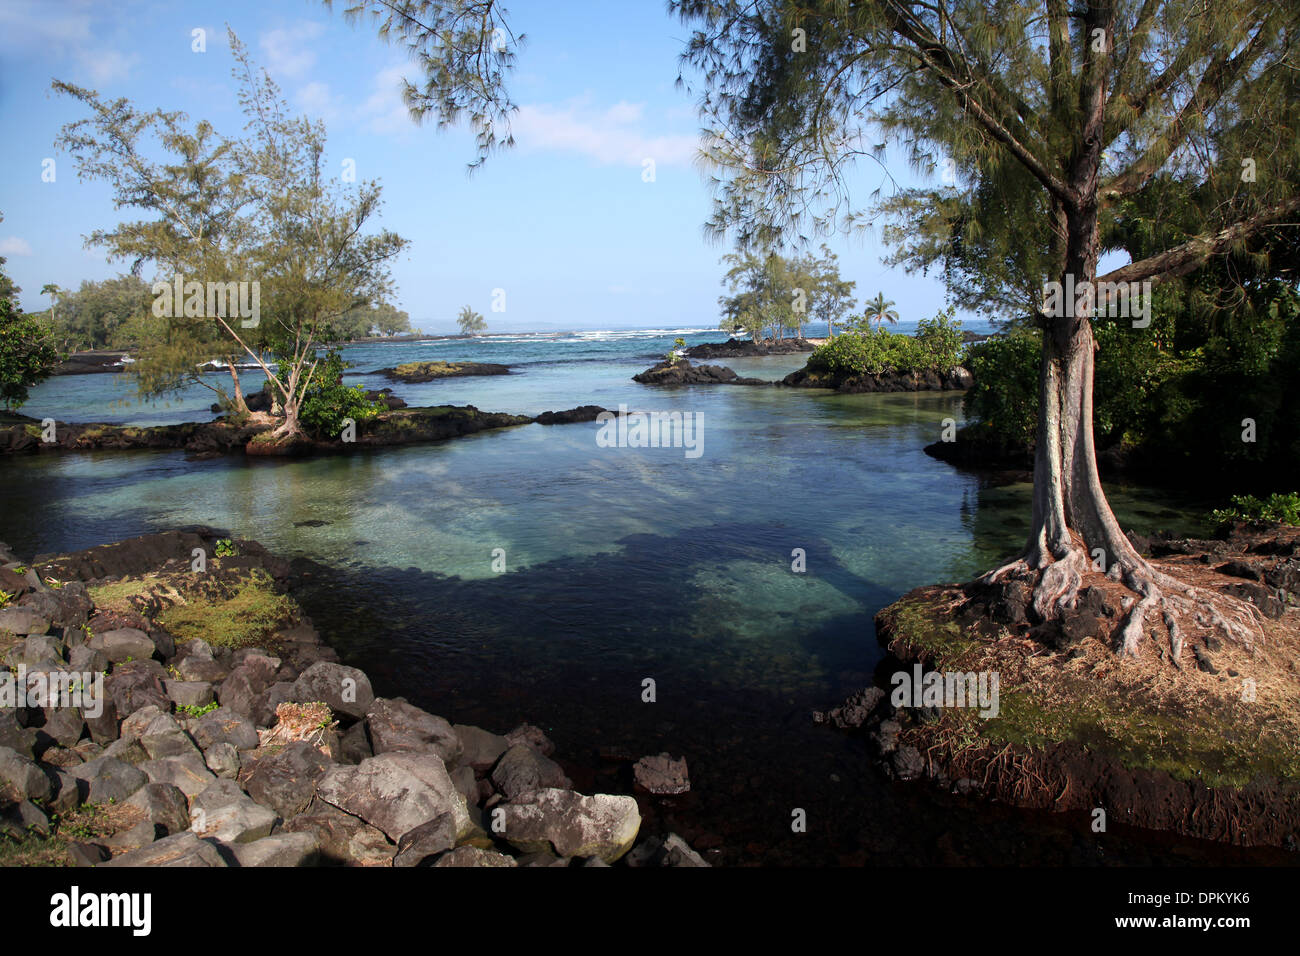 A good swimming spot in the suburbs of Hilo where turtles come into the fresh water to rid themselves of marine parasites - Stock Image